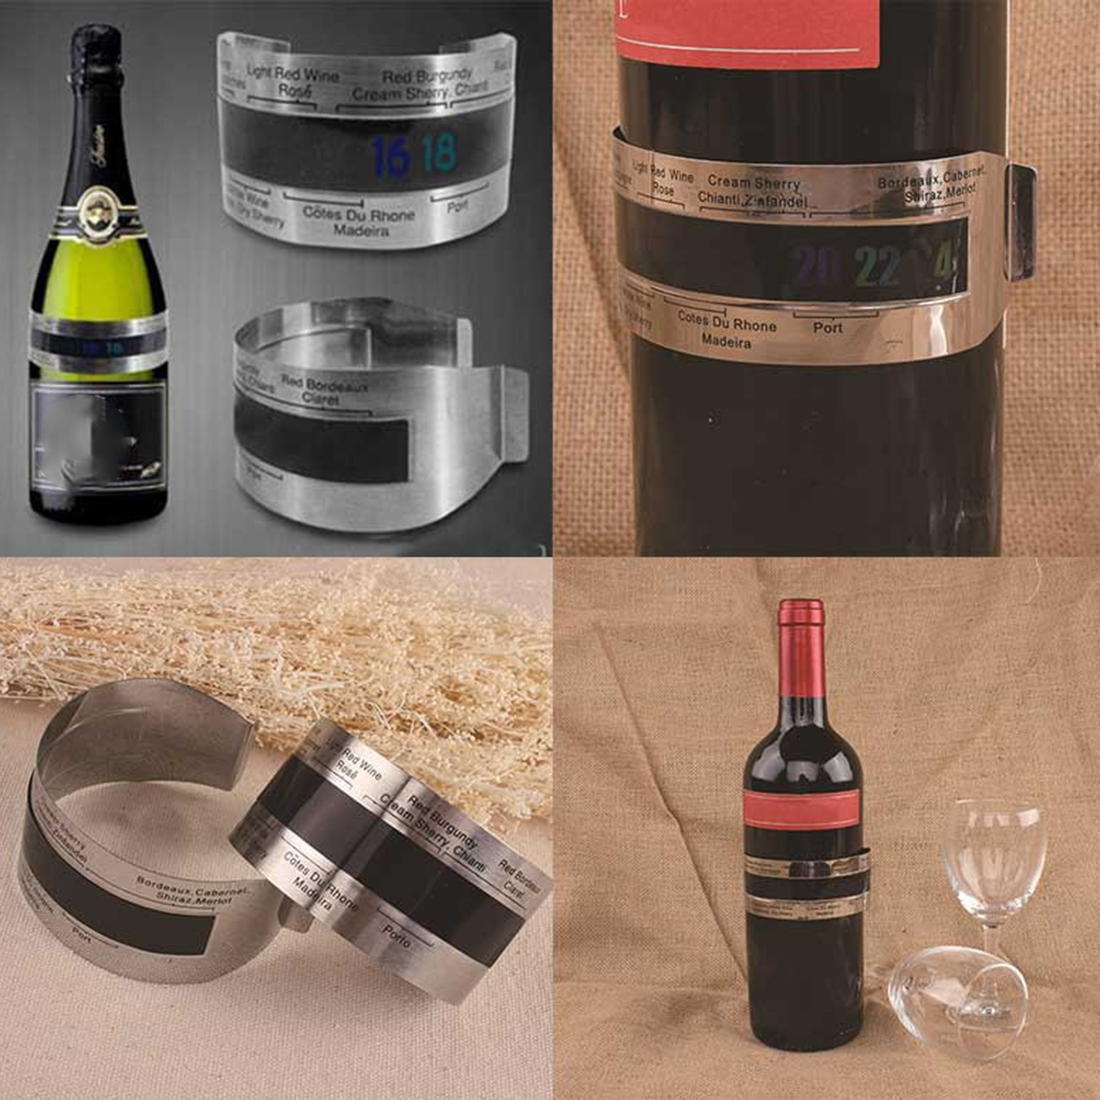 Newest Stainless Steel Wine Bracelet Thermometer 4--26 degree centigrade Red Wine Temperature Sensor Wine Thermometer image